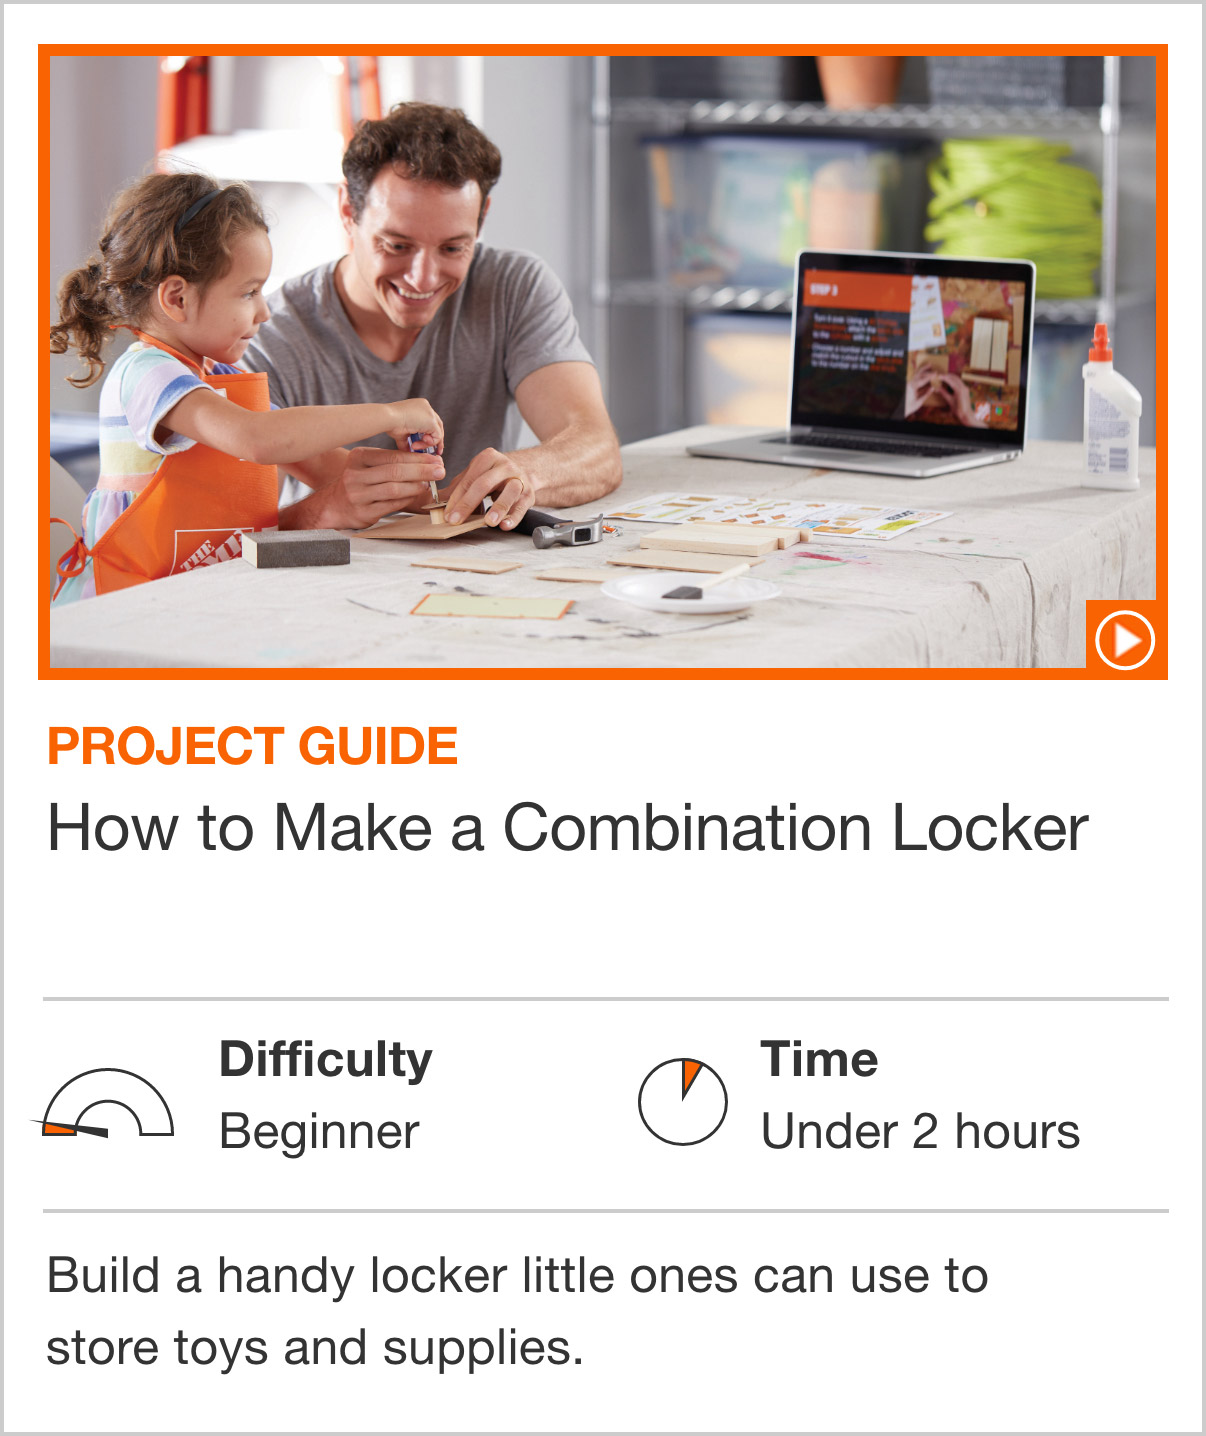 How to Make a Combination Locker